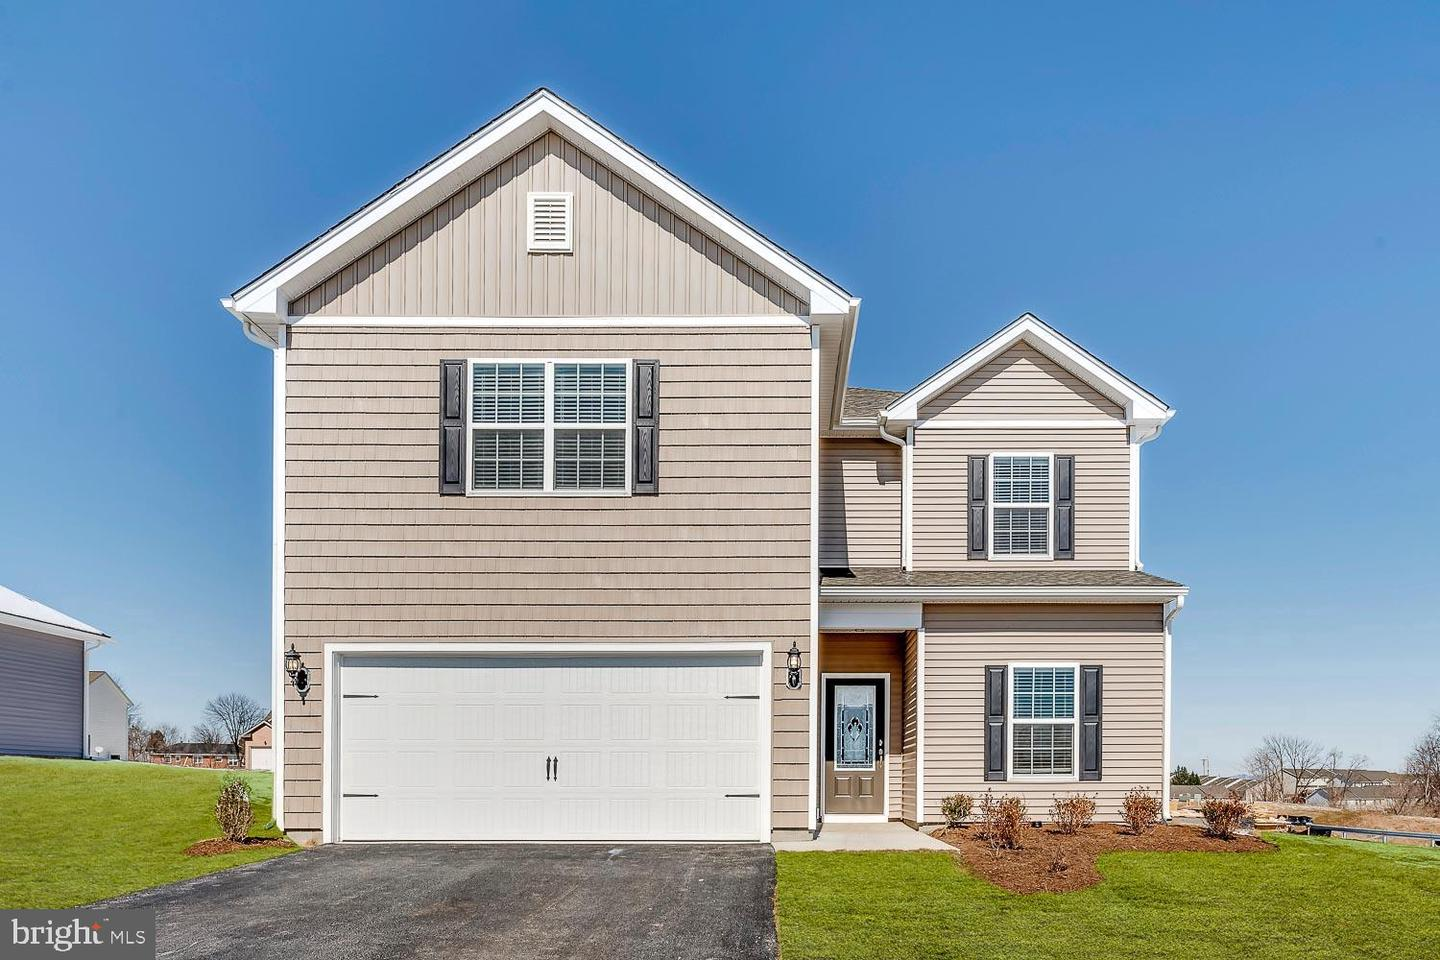 Single Family for Sale at Tbd 36 Eakins Ln Martinsburg, West Virginia 25401 United States